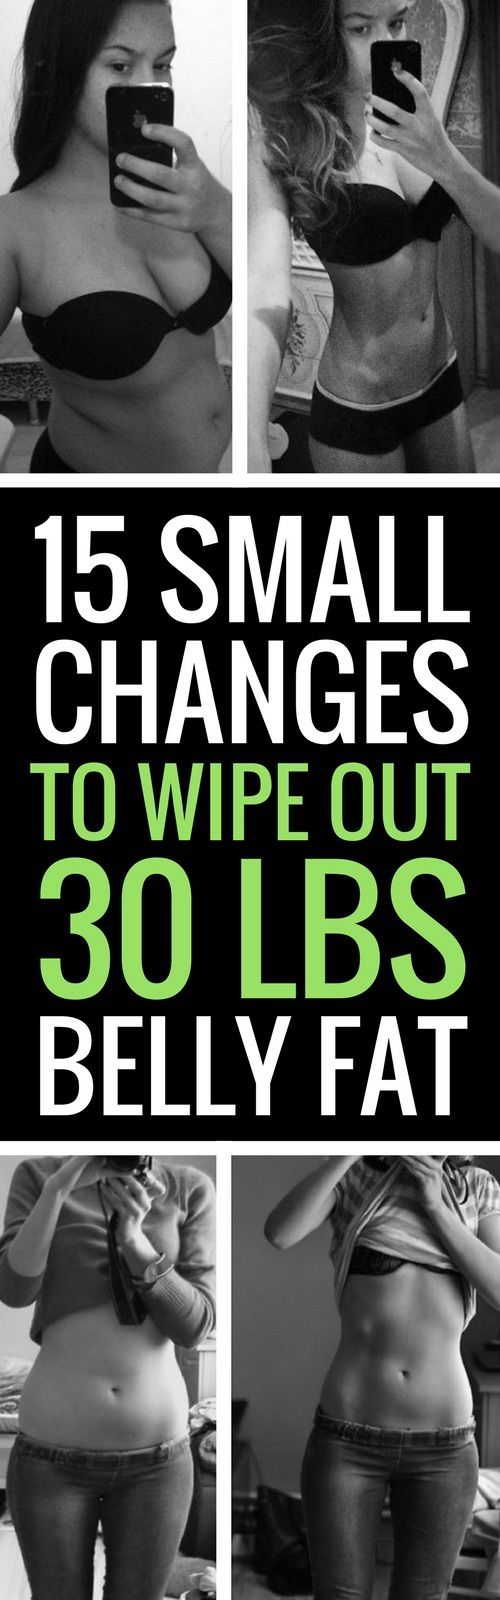 15 changes to your daily routine to battle belly fat.